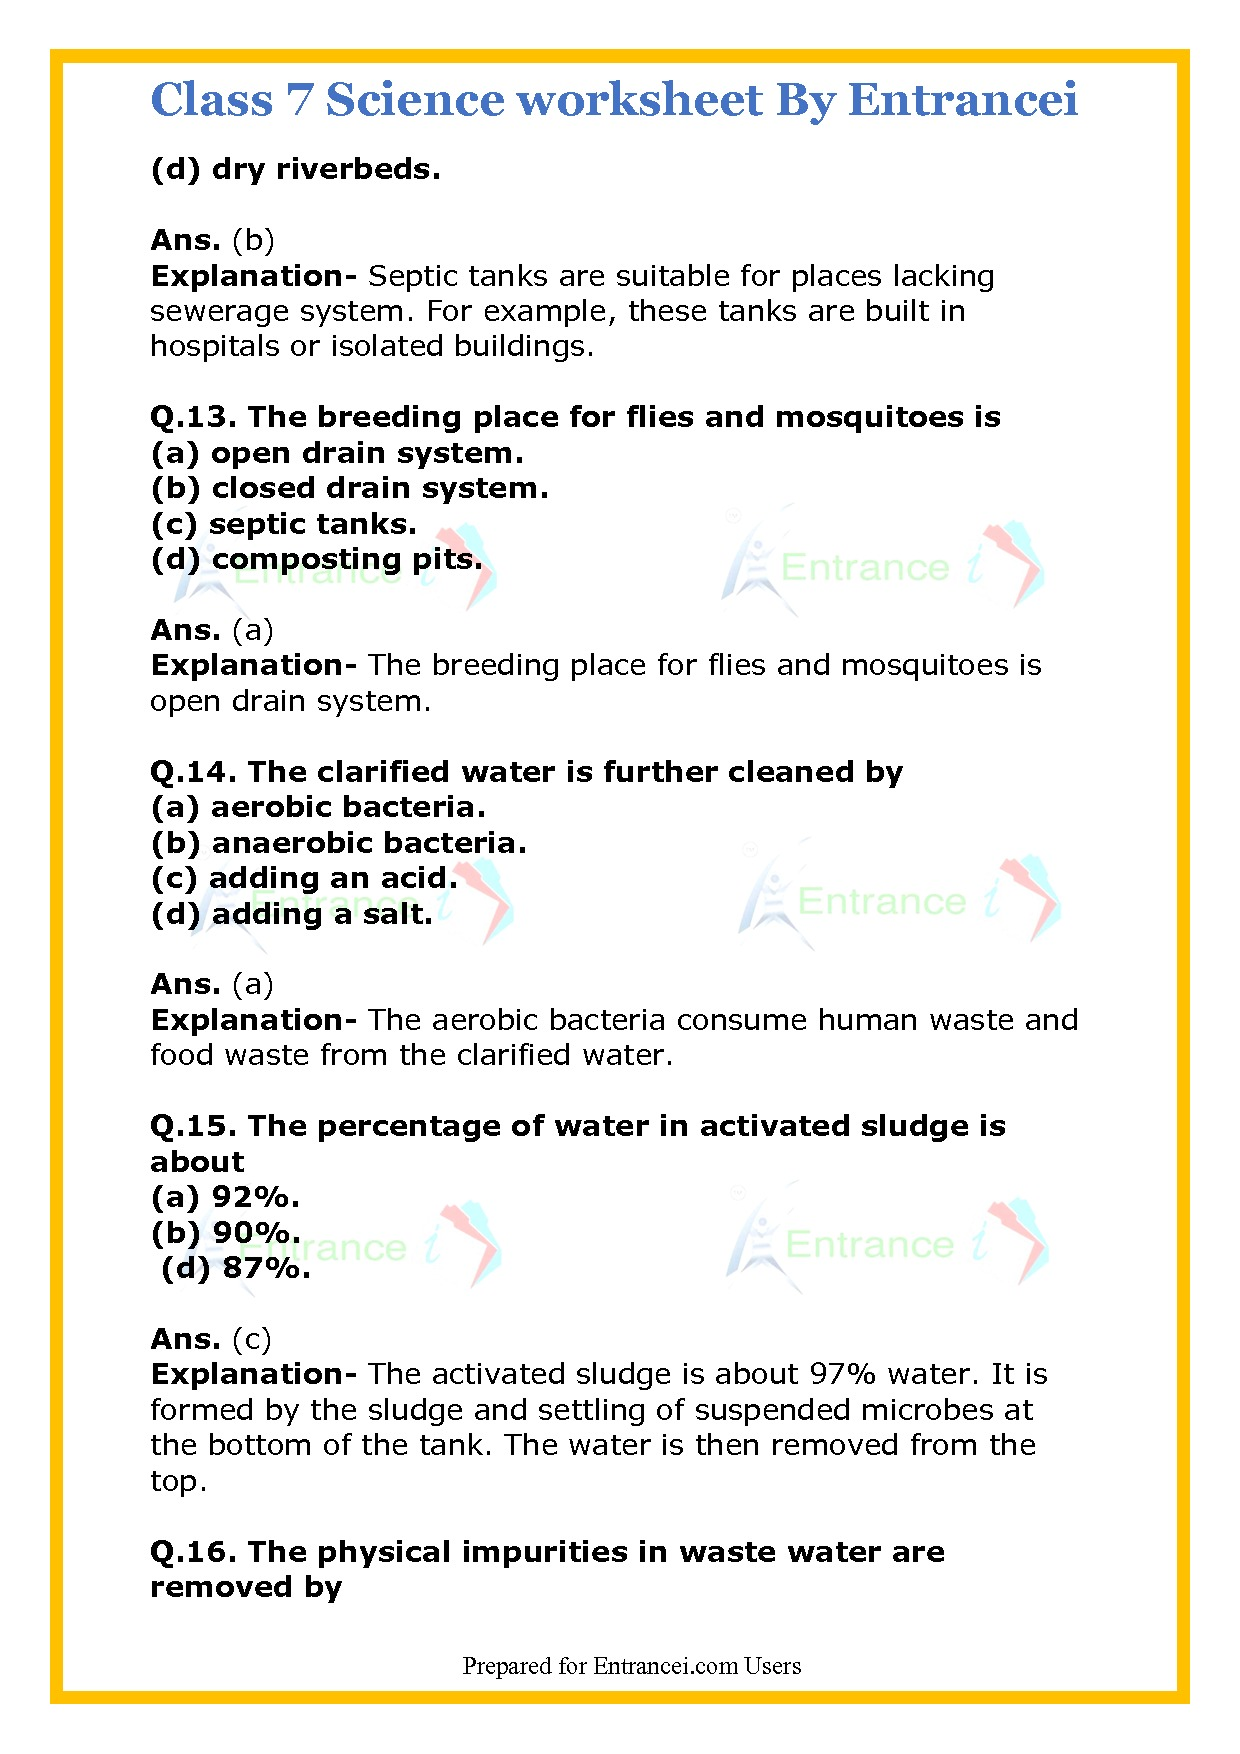 Class 7 Science Worksheet With Detail Solutions For